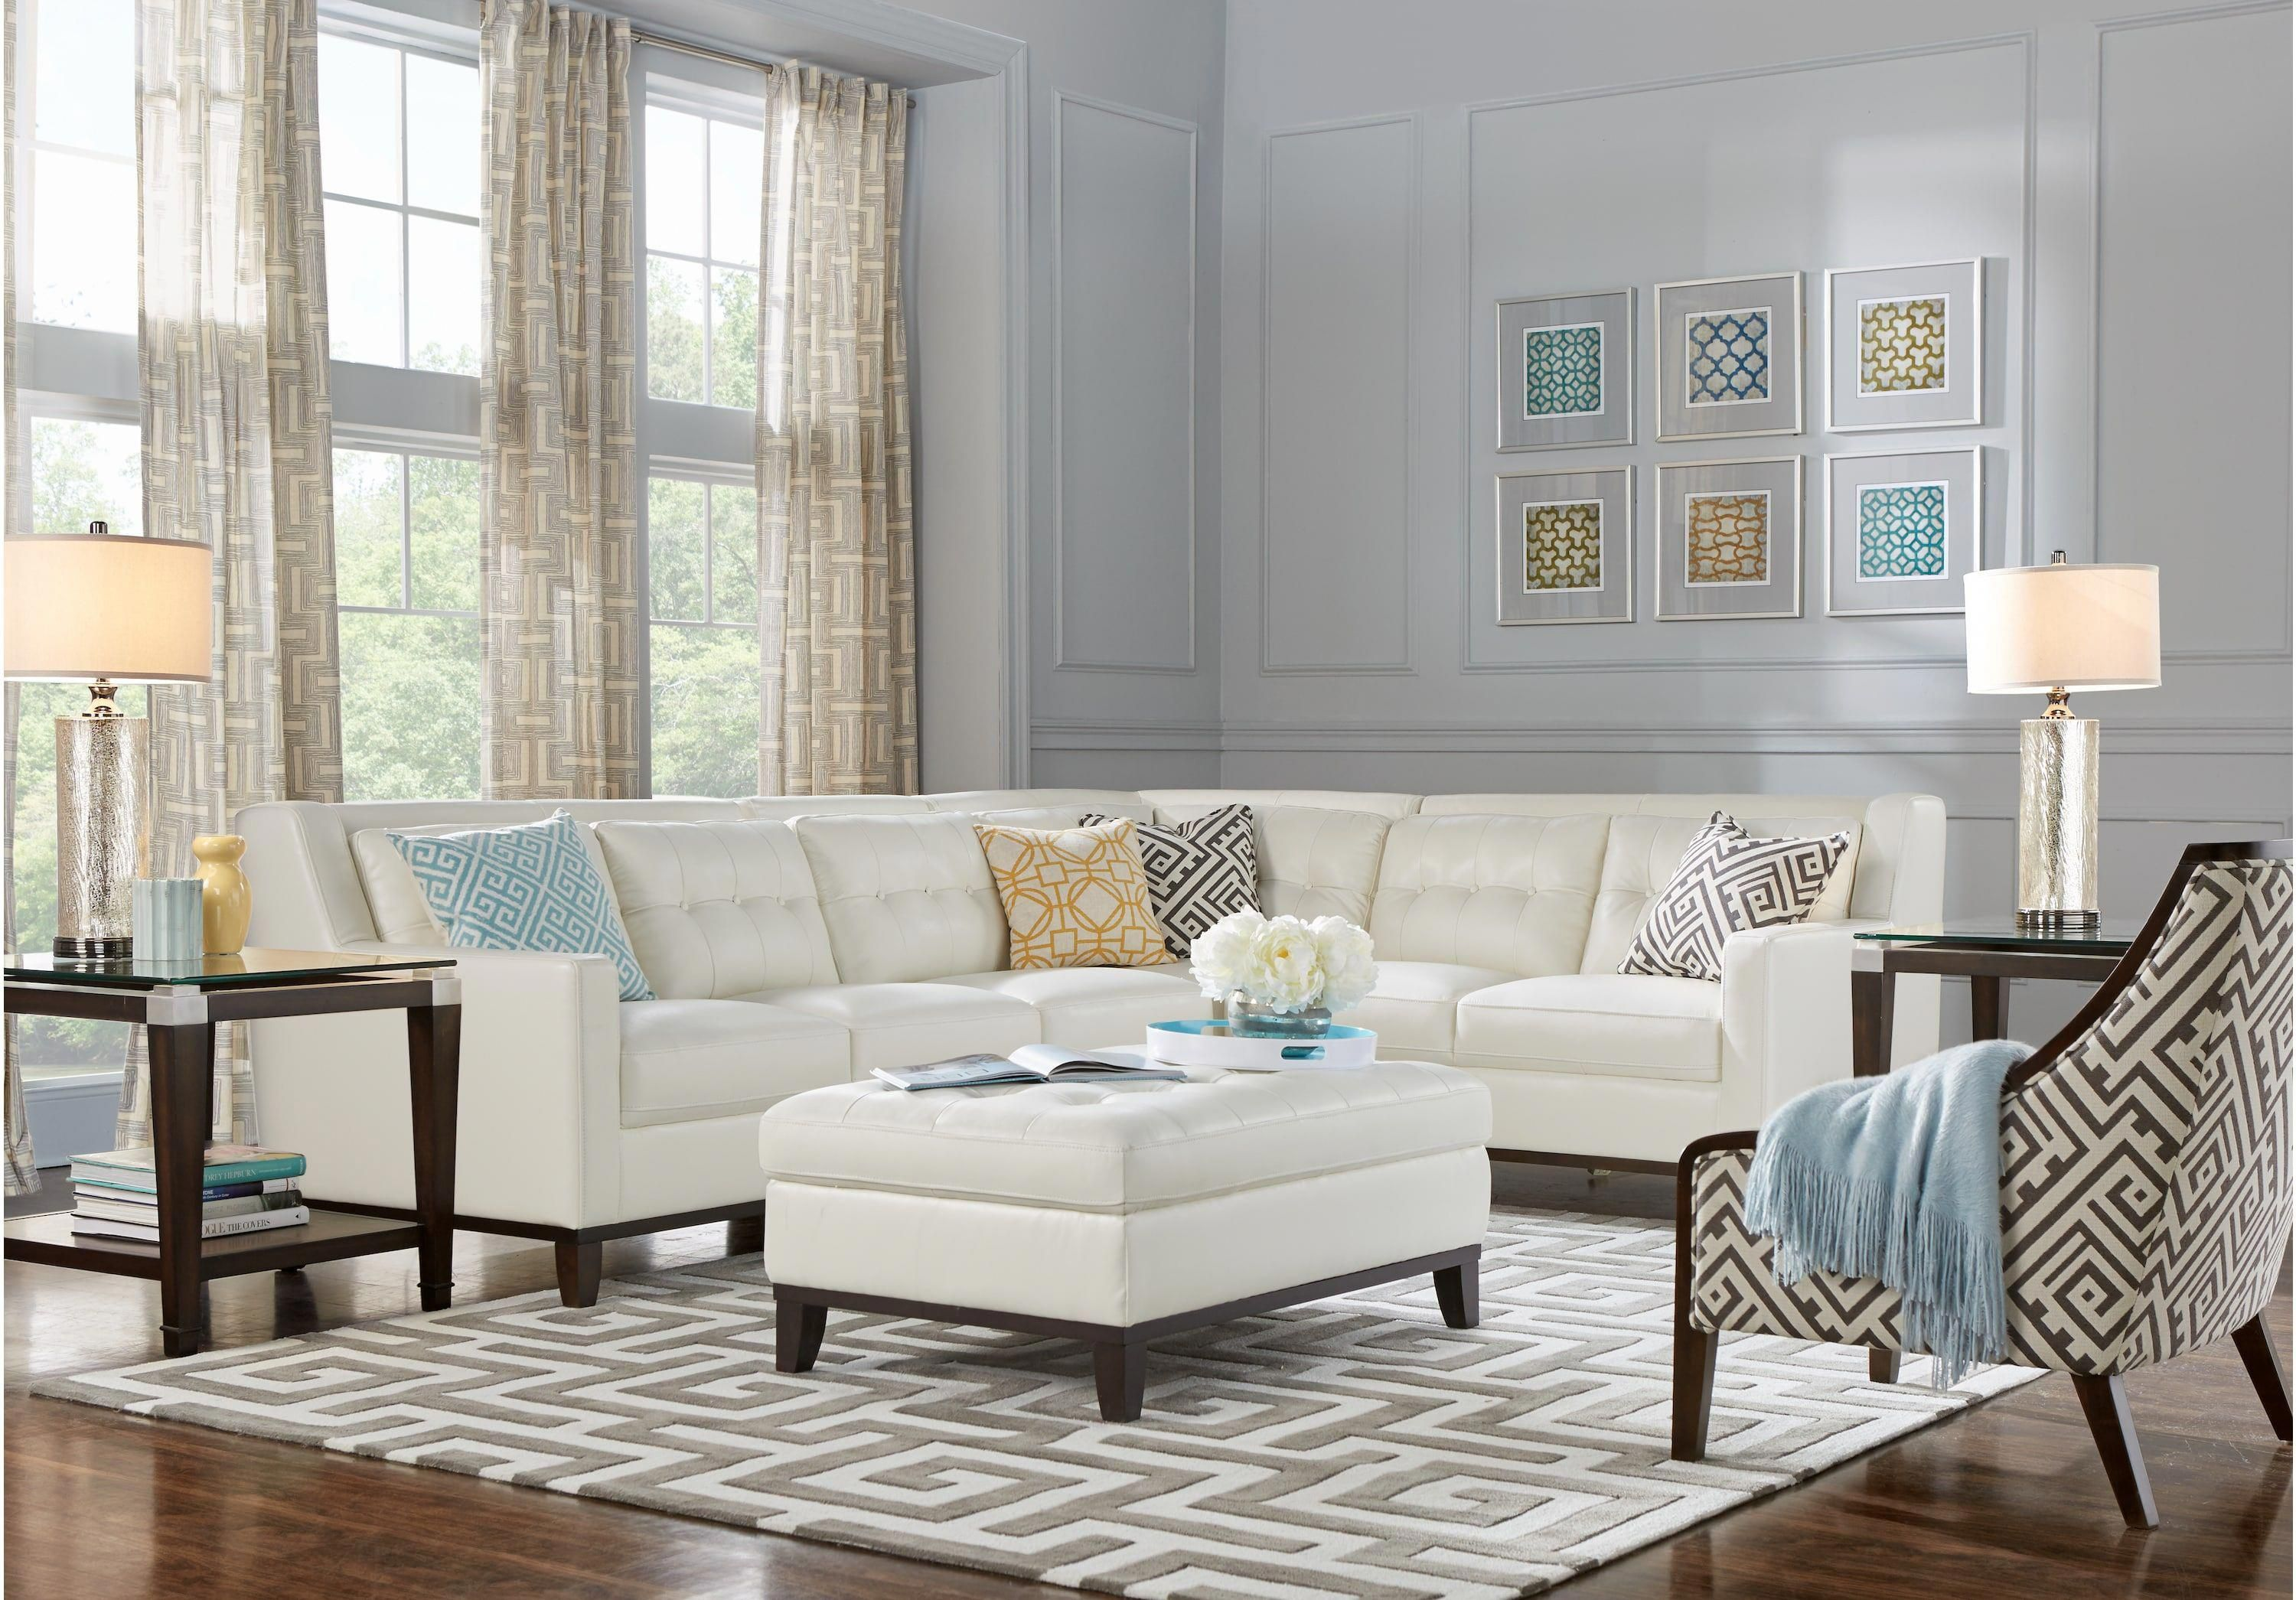 San Giovanni White 5 Pc Leather Sectional Living Room Leather Living Rooms White Contemporarylivingroomdec Leather Living Room Furniture Living Room Sectional Living Room White